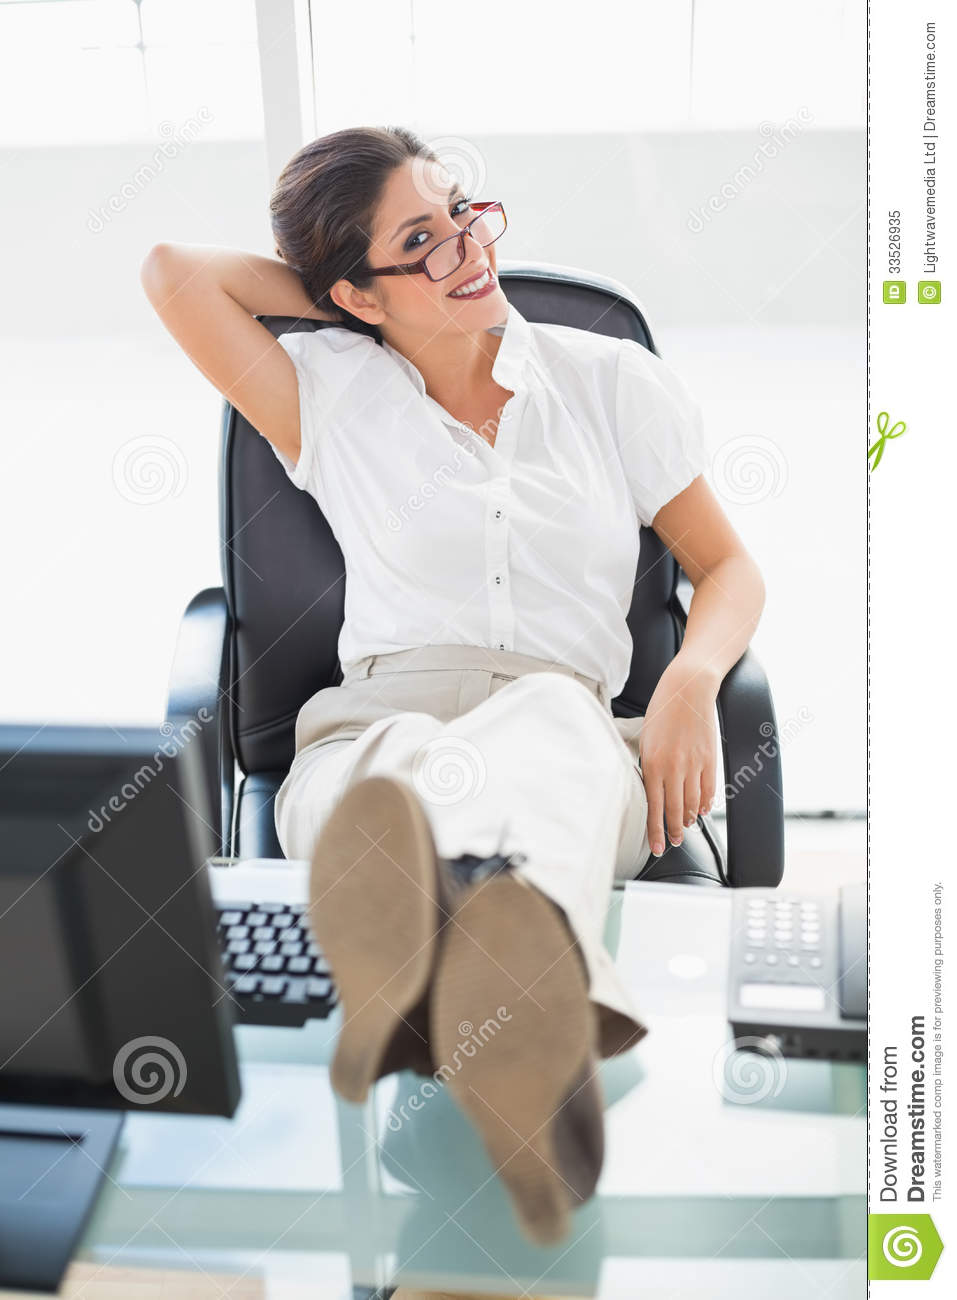 Relaxed Businesswoman Sitting At Her Desk With Her Feet Up